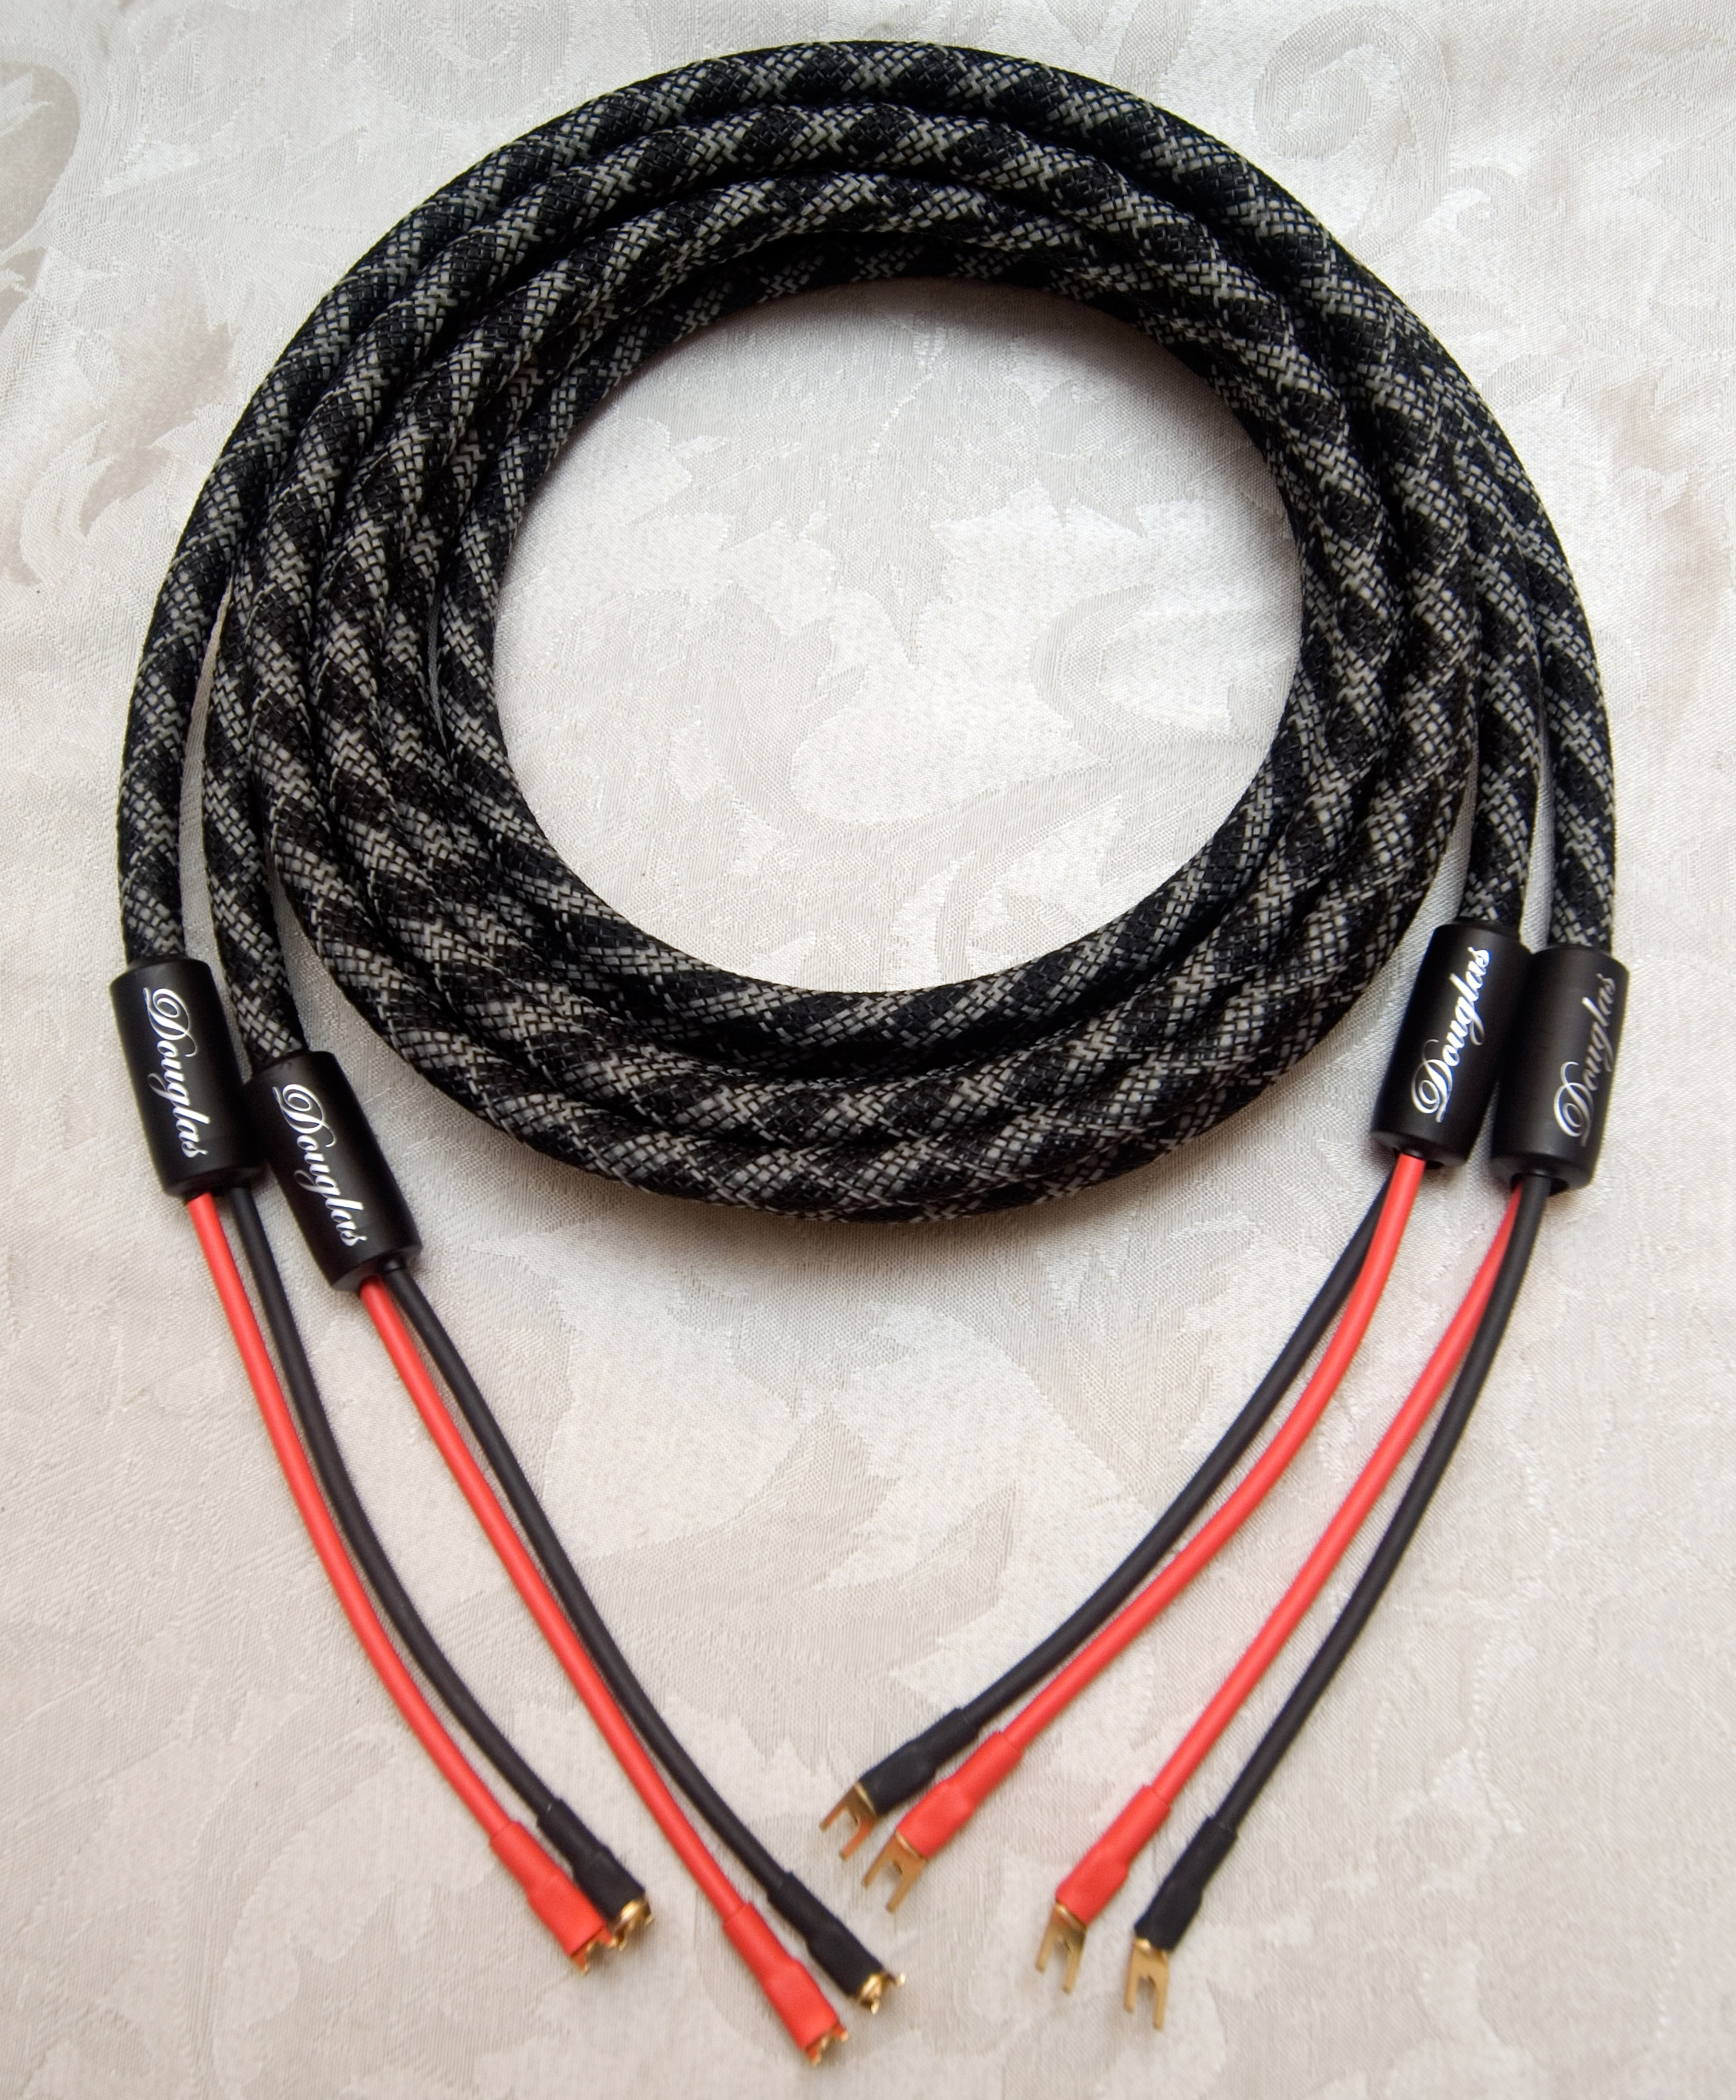 12 AWG OFHC Speaker Cable DIY Kit